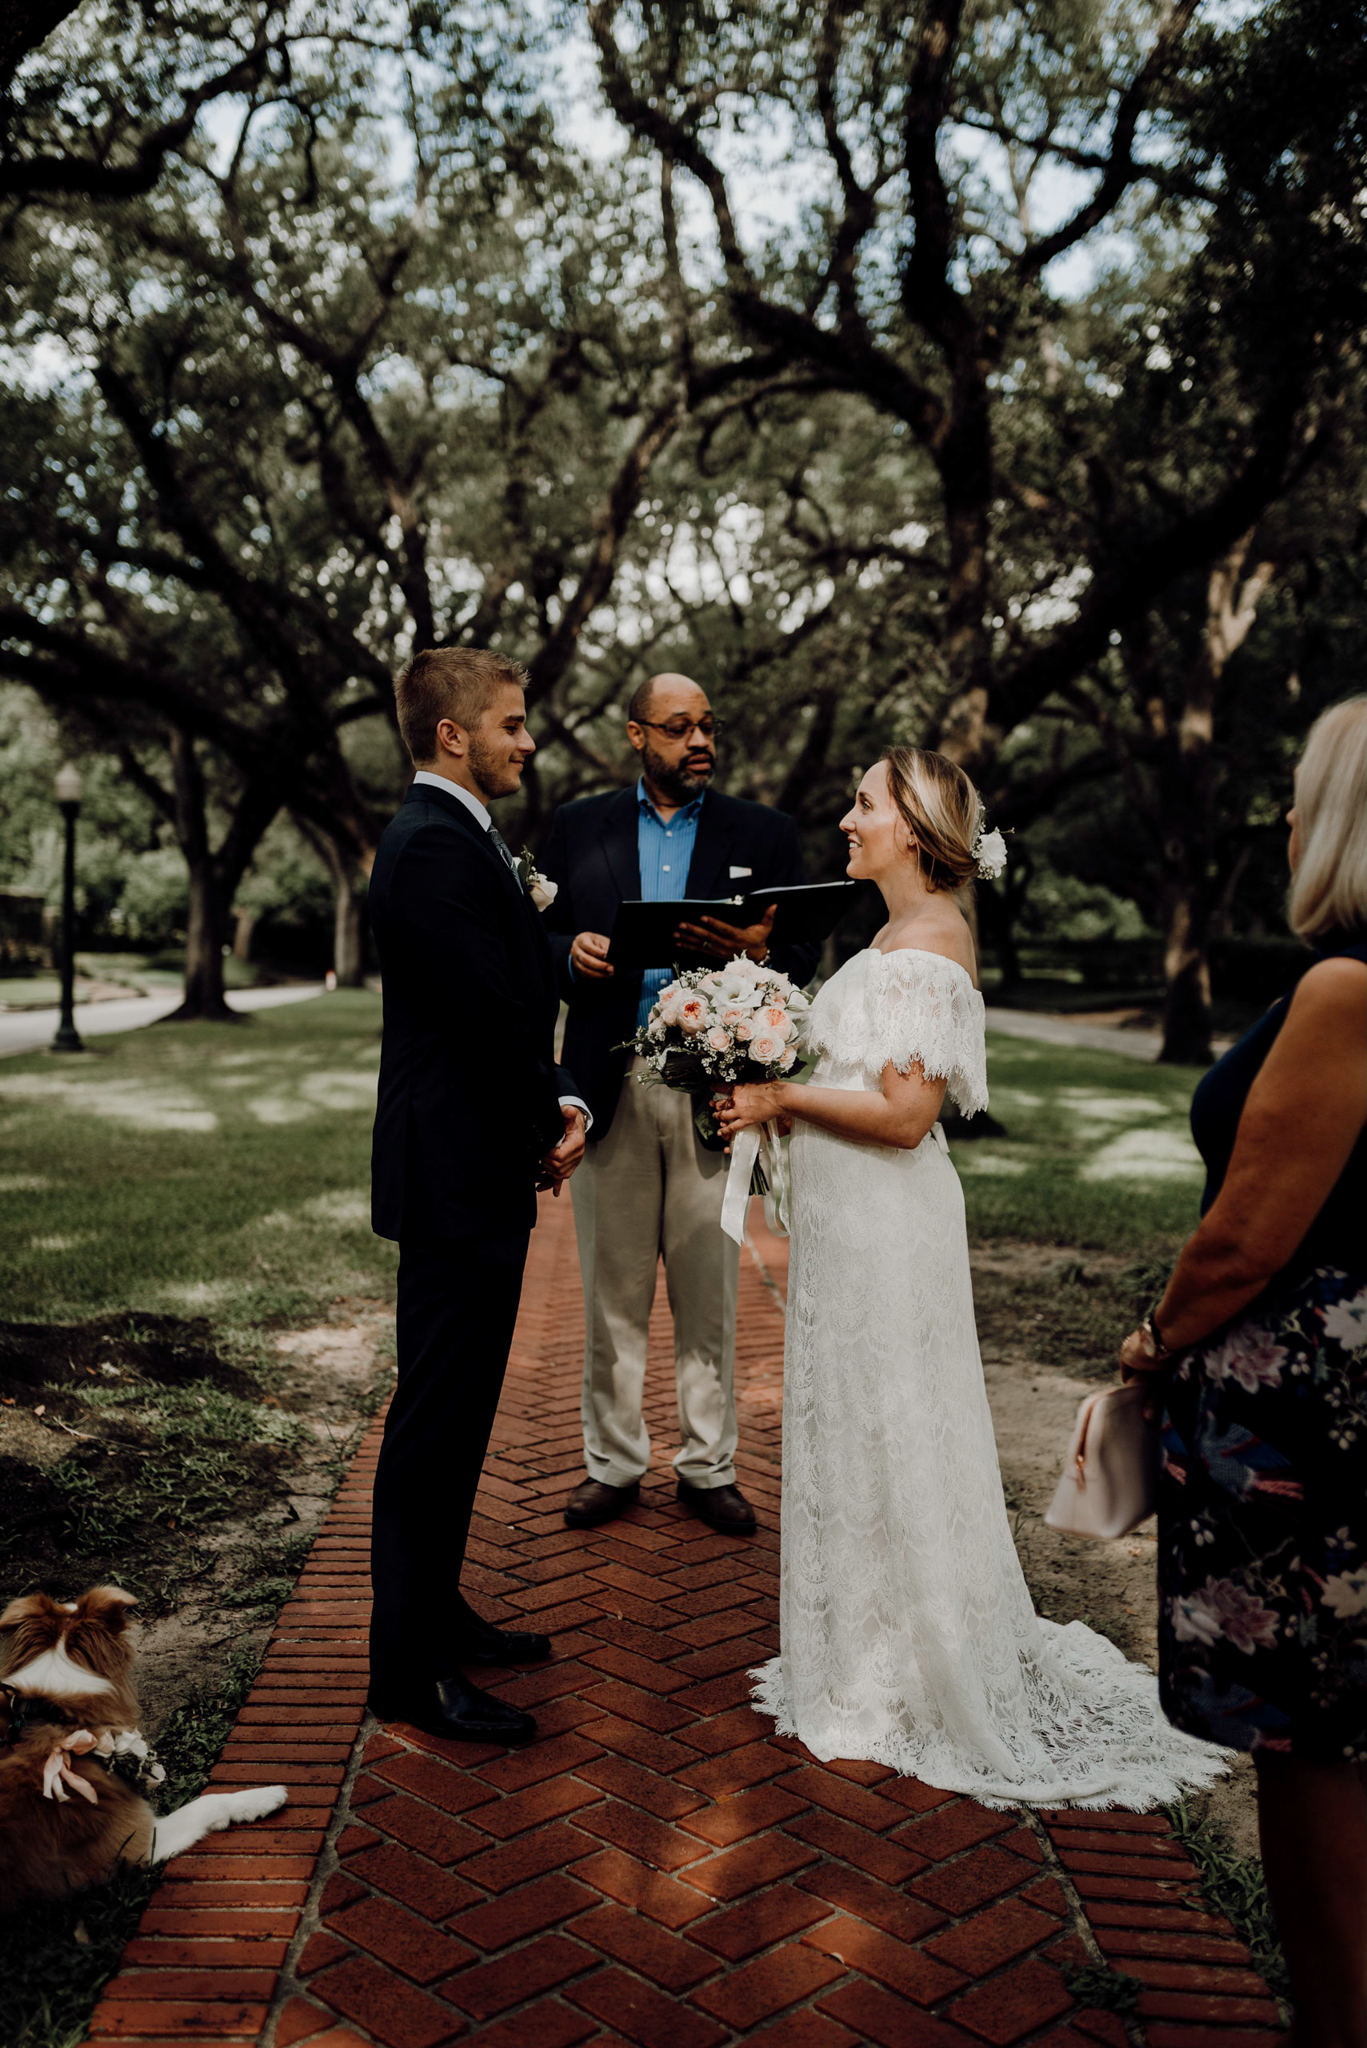 Houston Wedding Photographer-North Blvd Intimate Elopement- Houston Wedding Photographer -Kristen Giles Photography-15.jpg